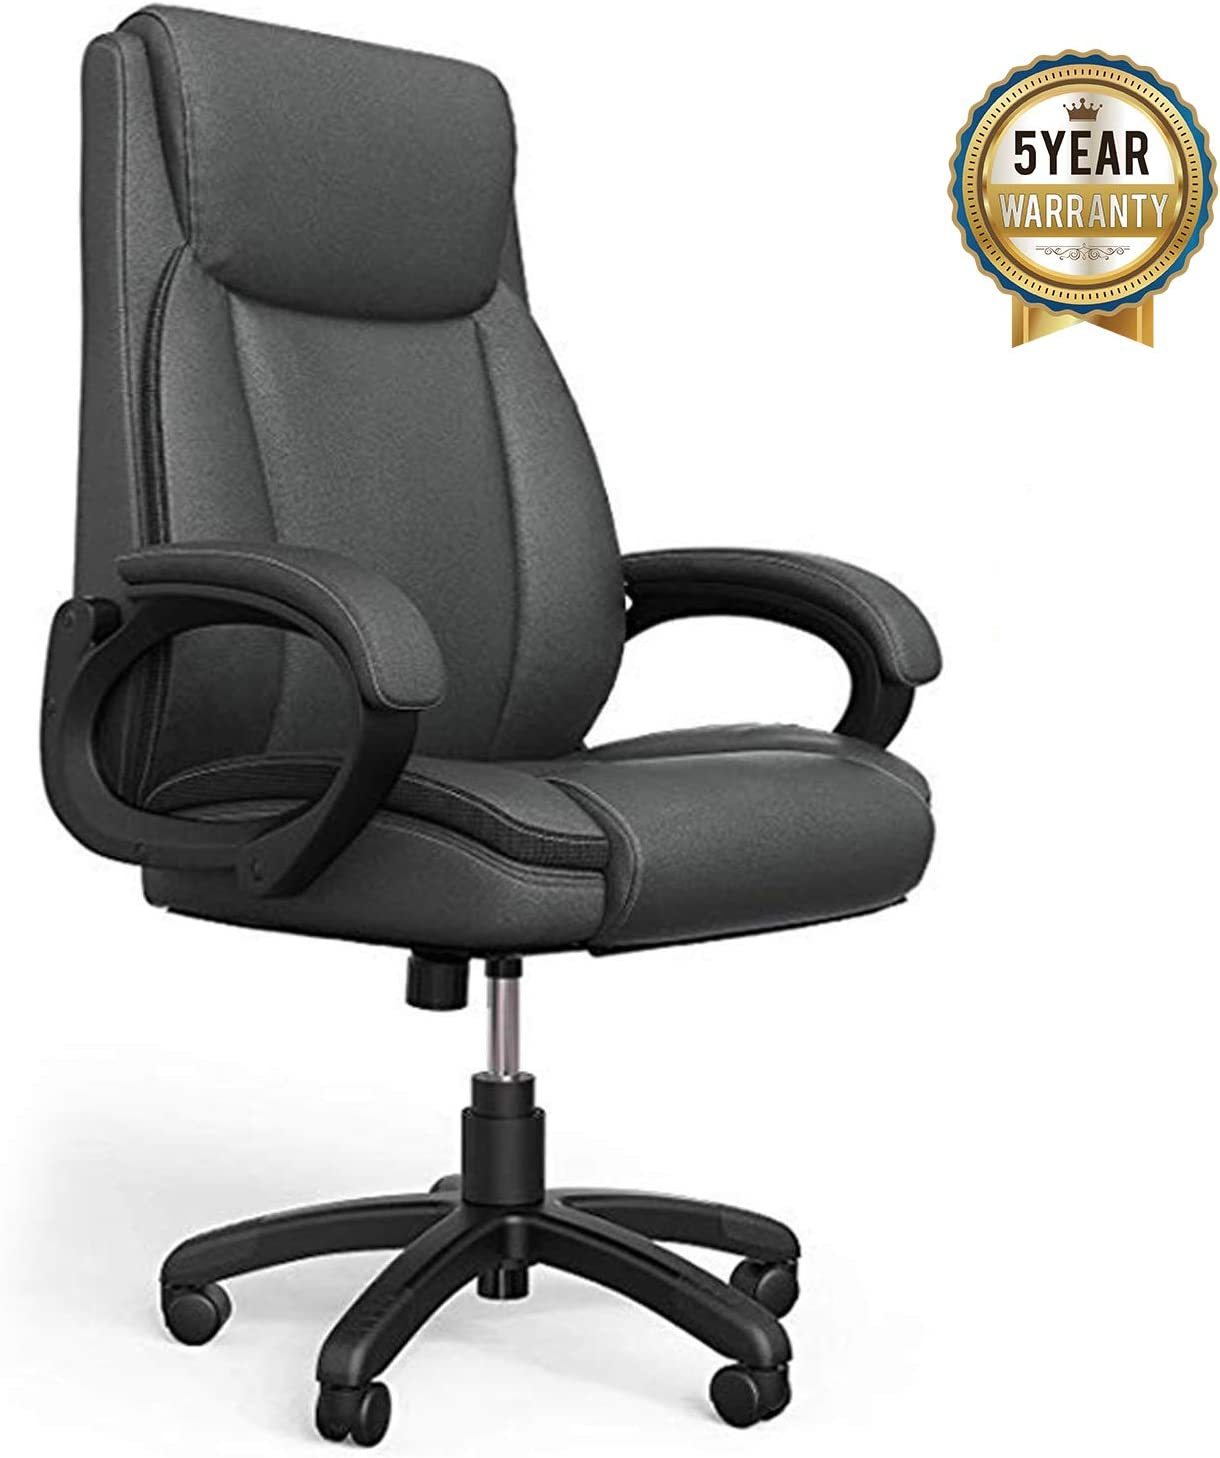 Amazon Com Mysuntown Executive Office Chair Pu Leather Swivel Managerial Task Chair Ergonomic High Back Home Office Desk Chair With Lumbar Support 260lb Office Products